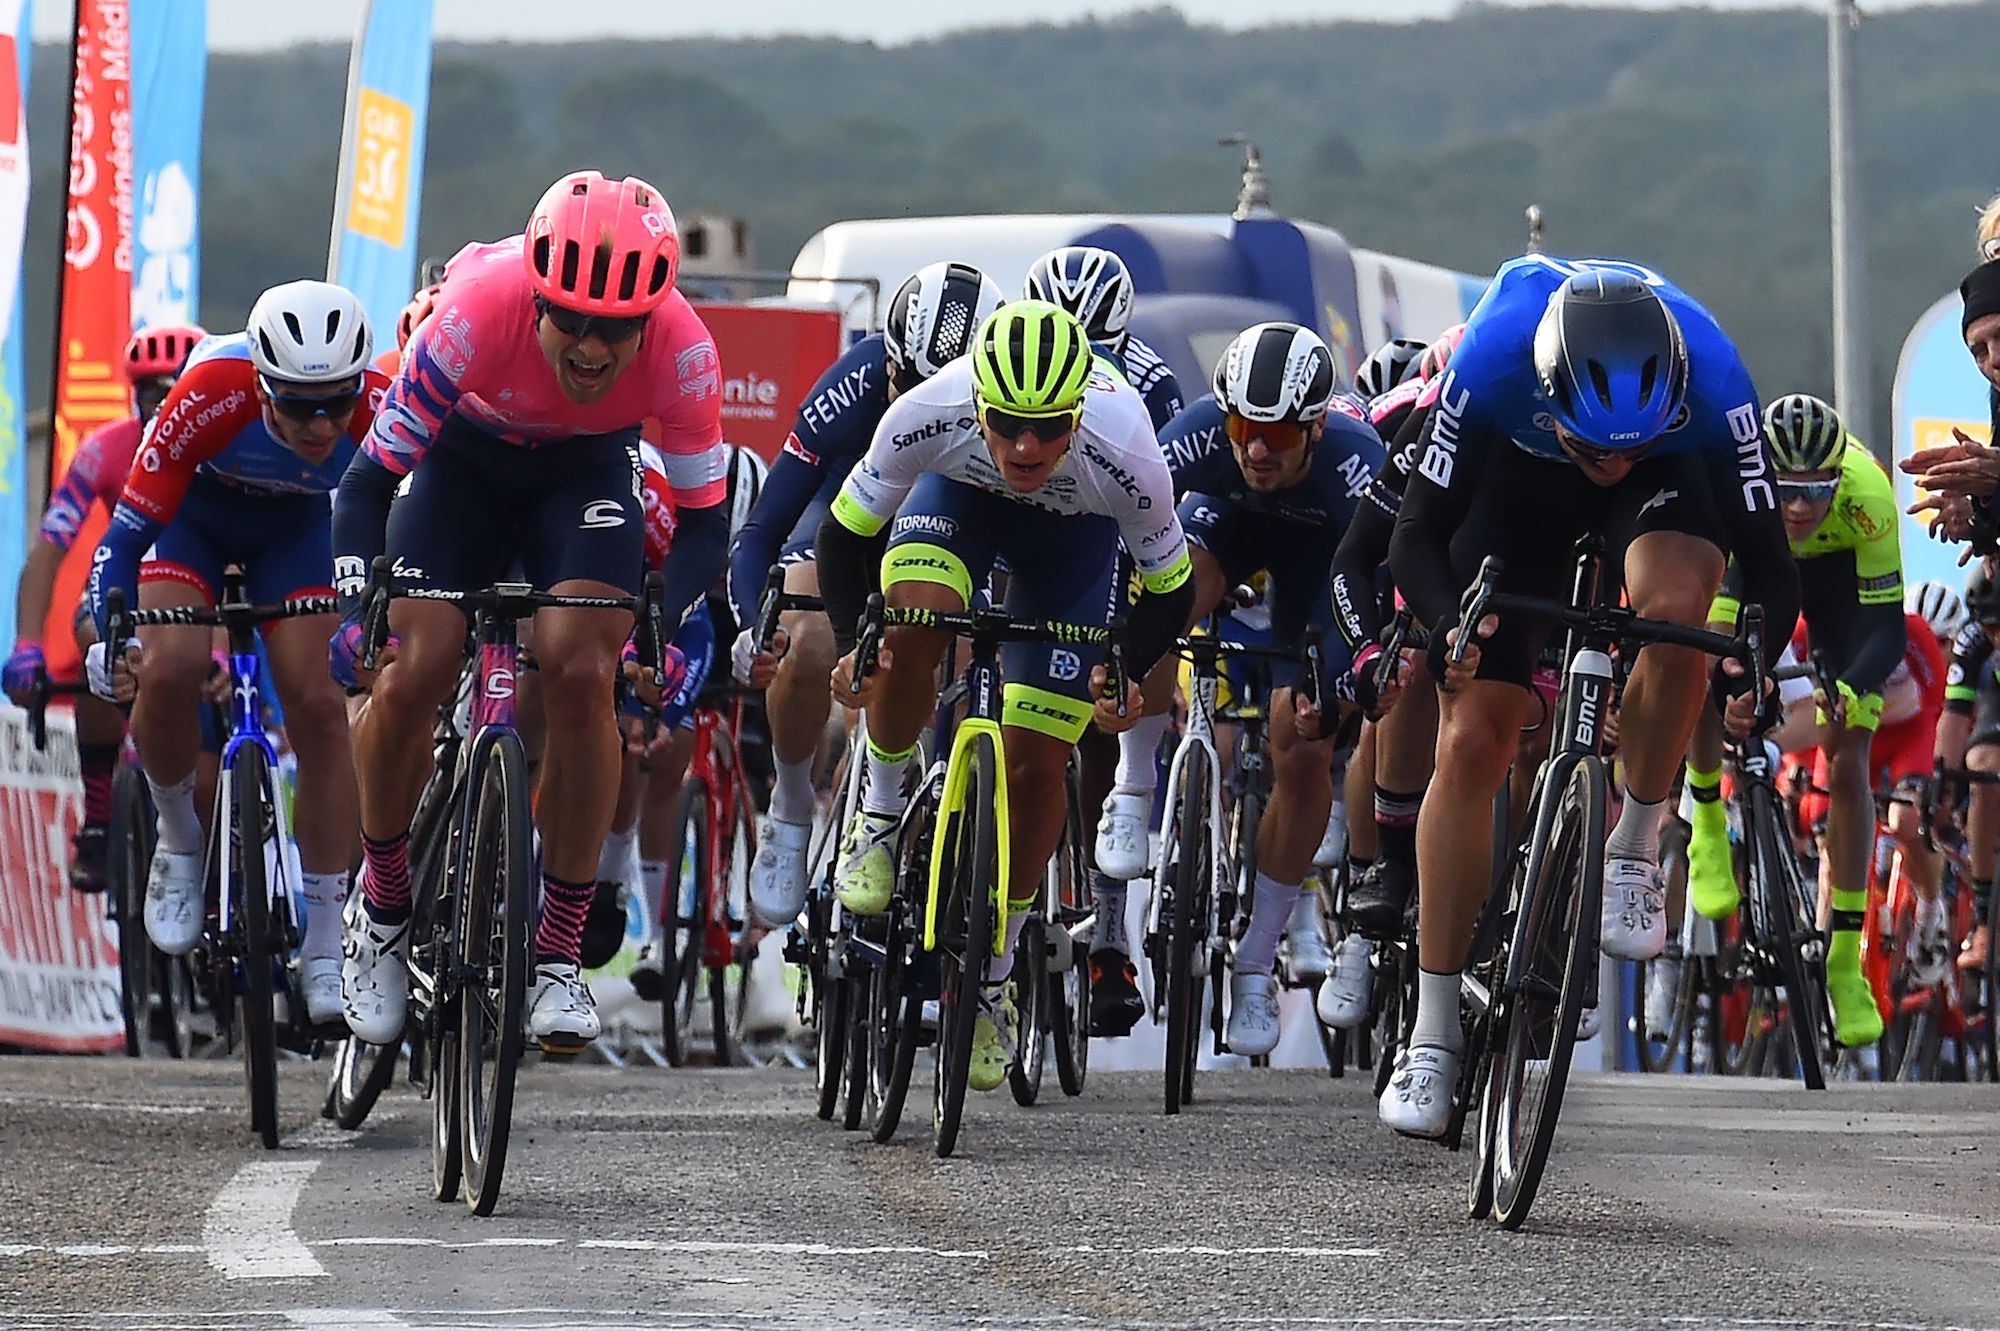 How to live stream Étoile de Bessèges 2021: Where to watch the first major stage race of the season